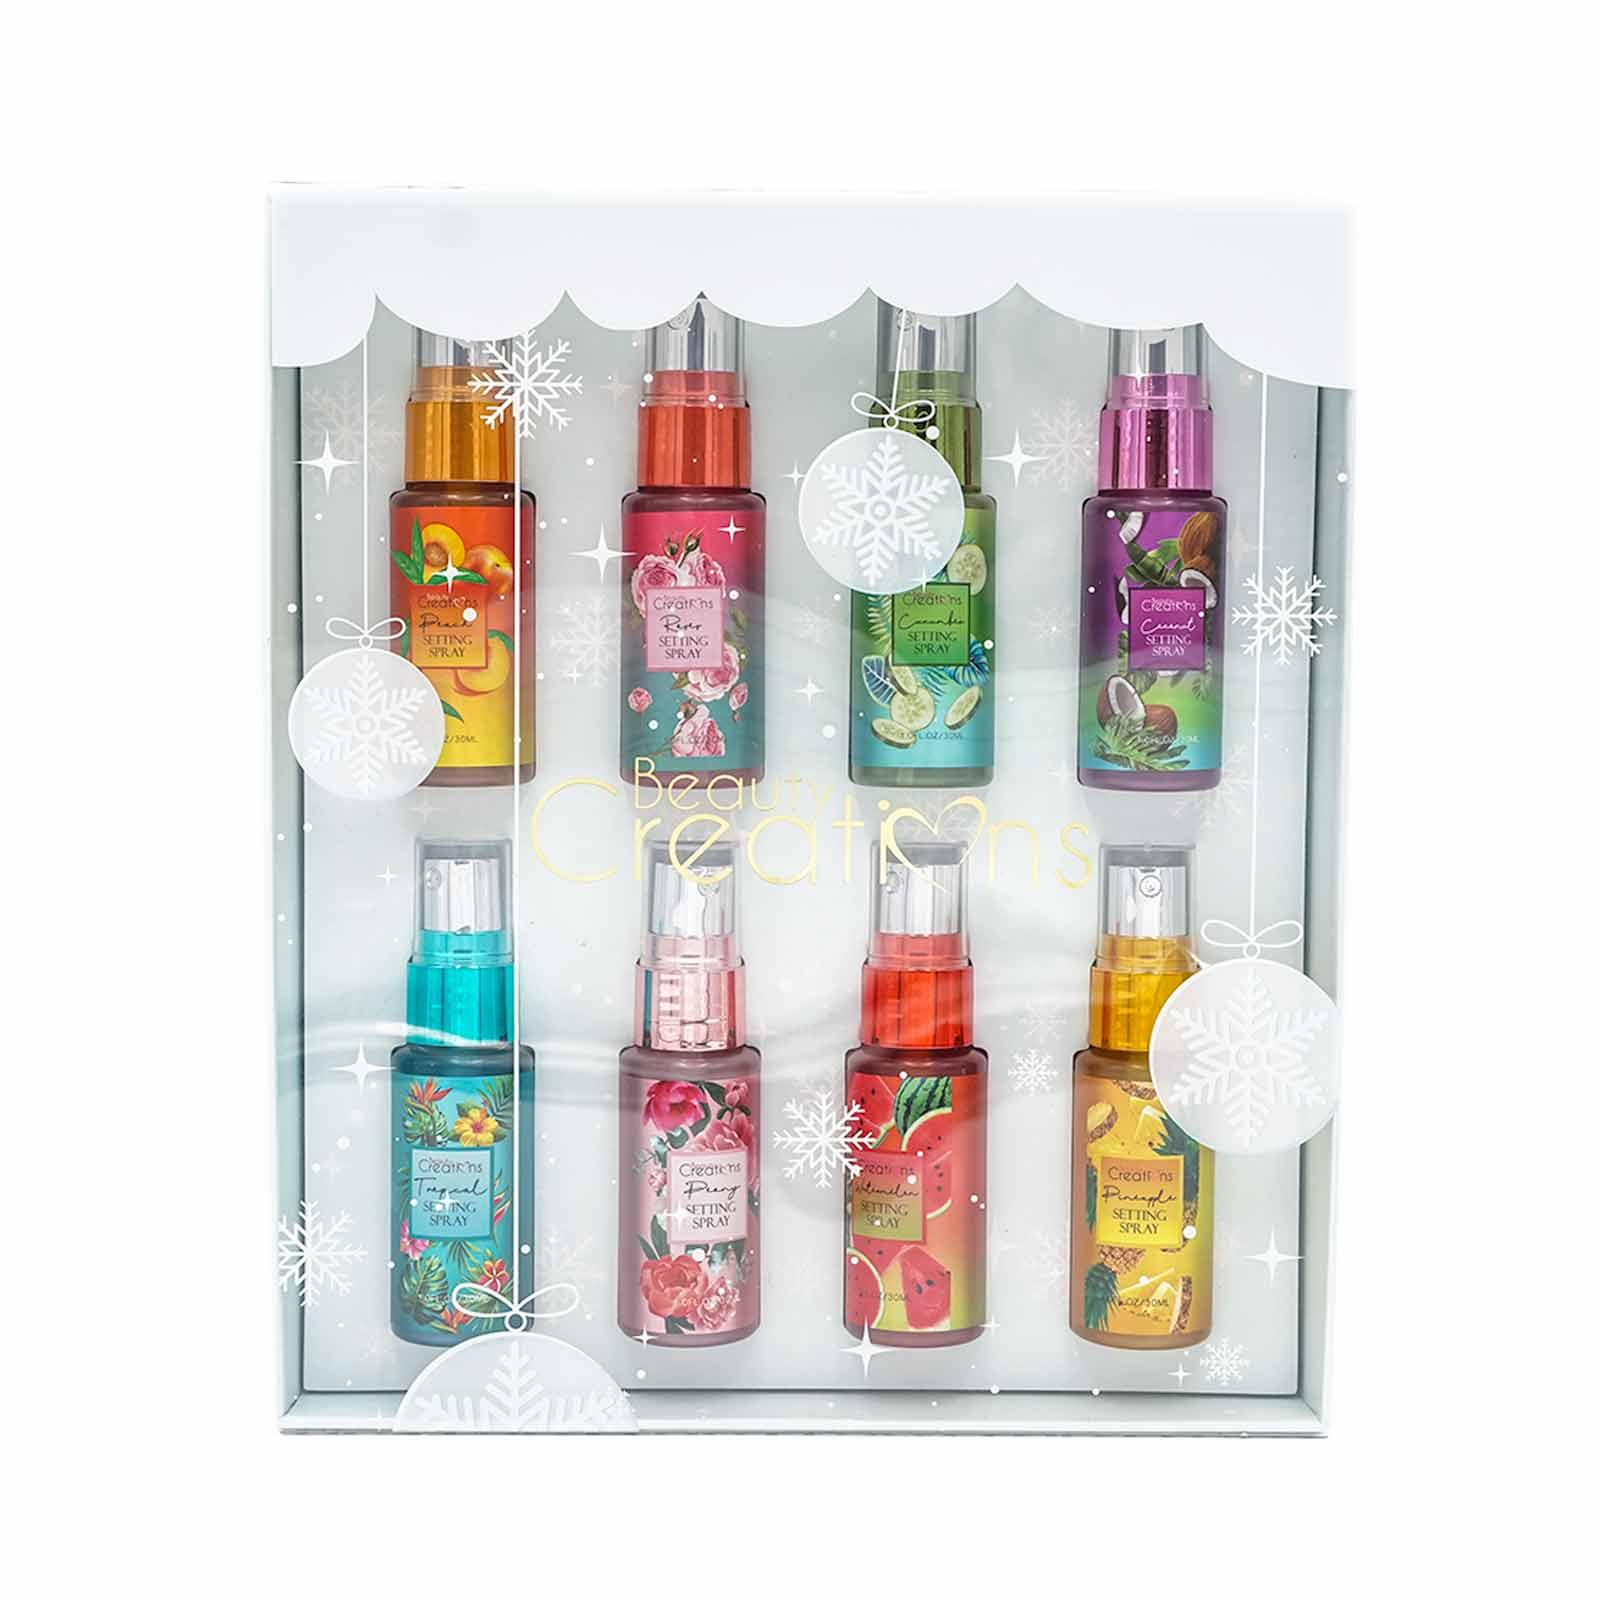 BEAUTY CREATIONS HOLIDAY SET SETTING SPRAY 1&2 COMPLETE- SSGIFT MINI (6/cs)